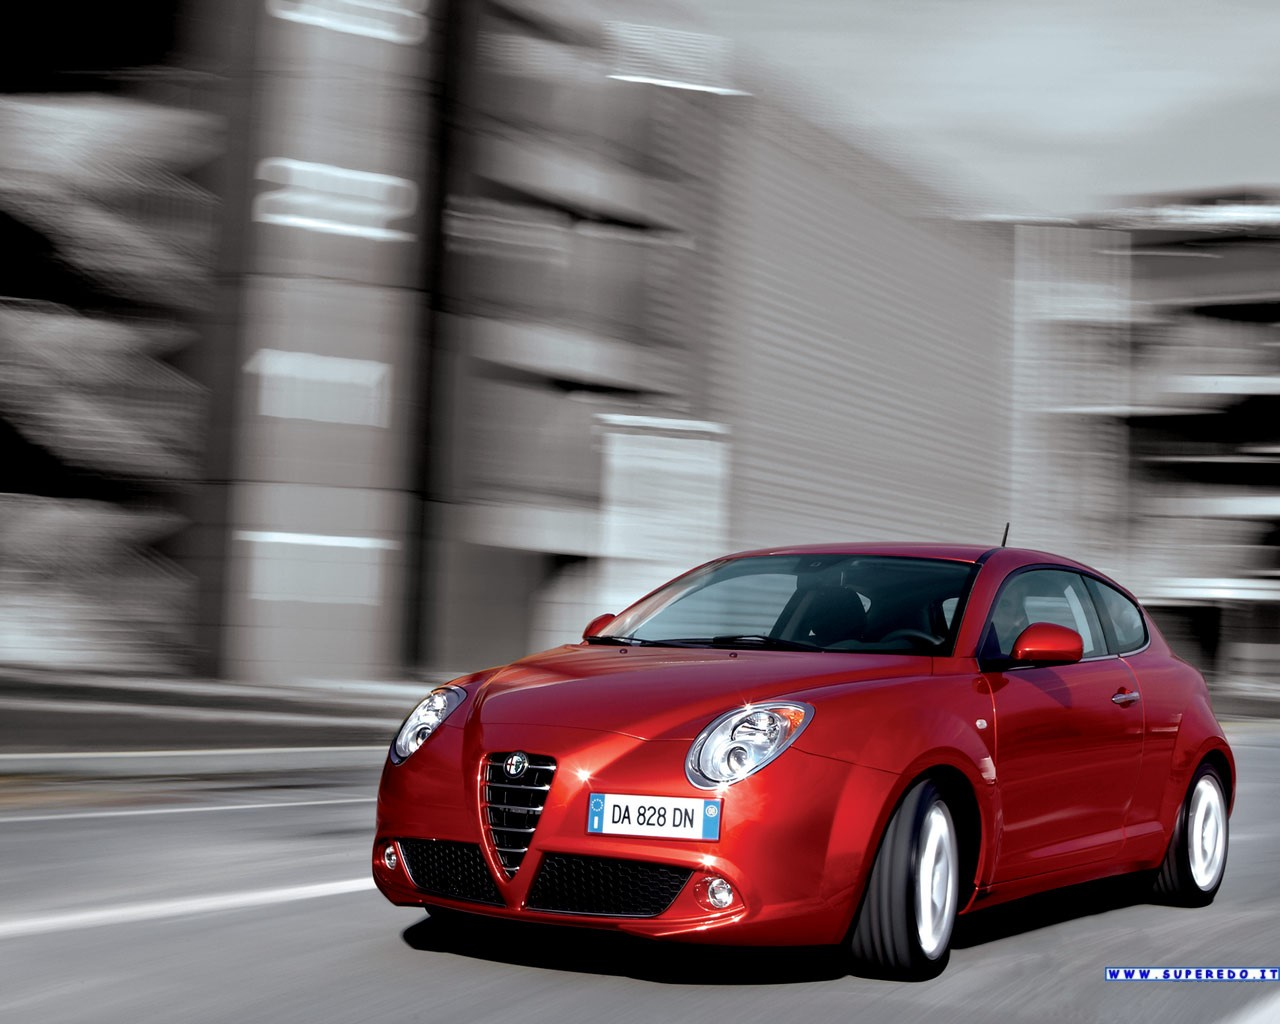 1280x1024 - Alfa Romeo 12C GTS Wallpapers 18